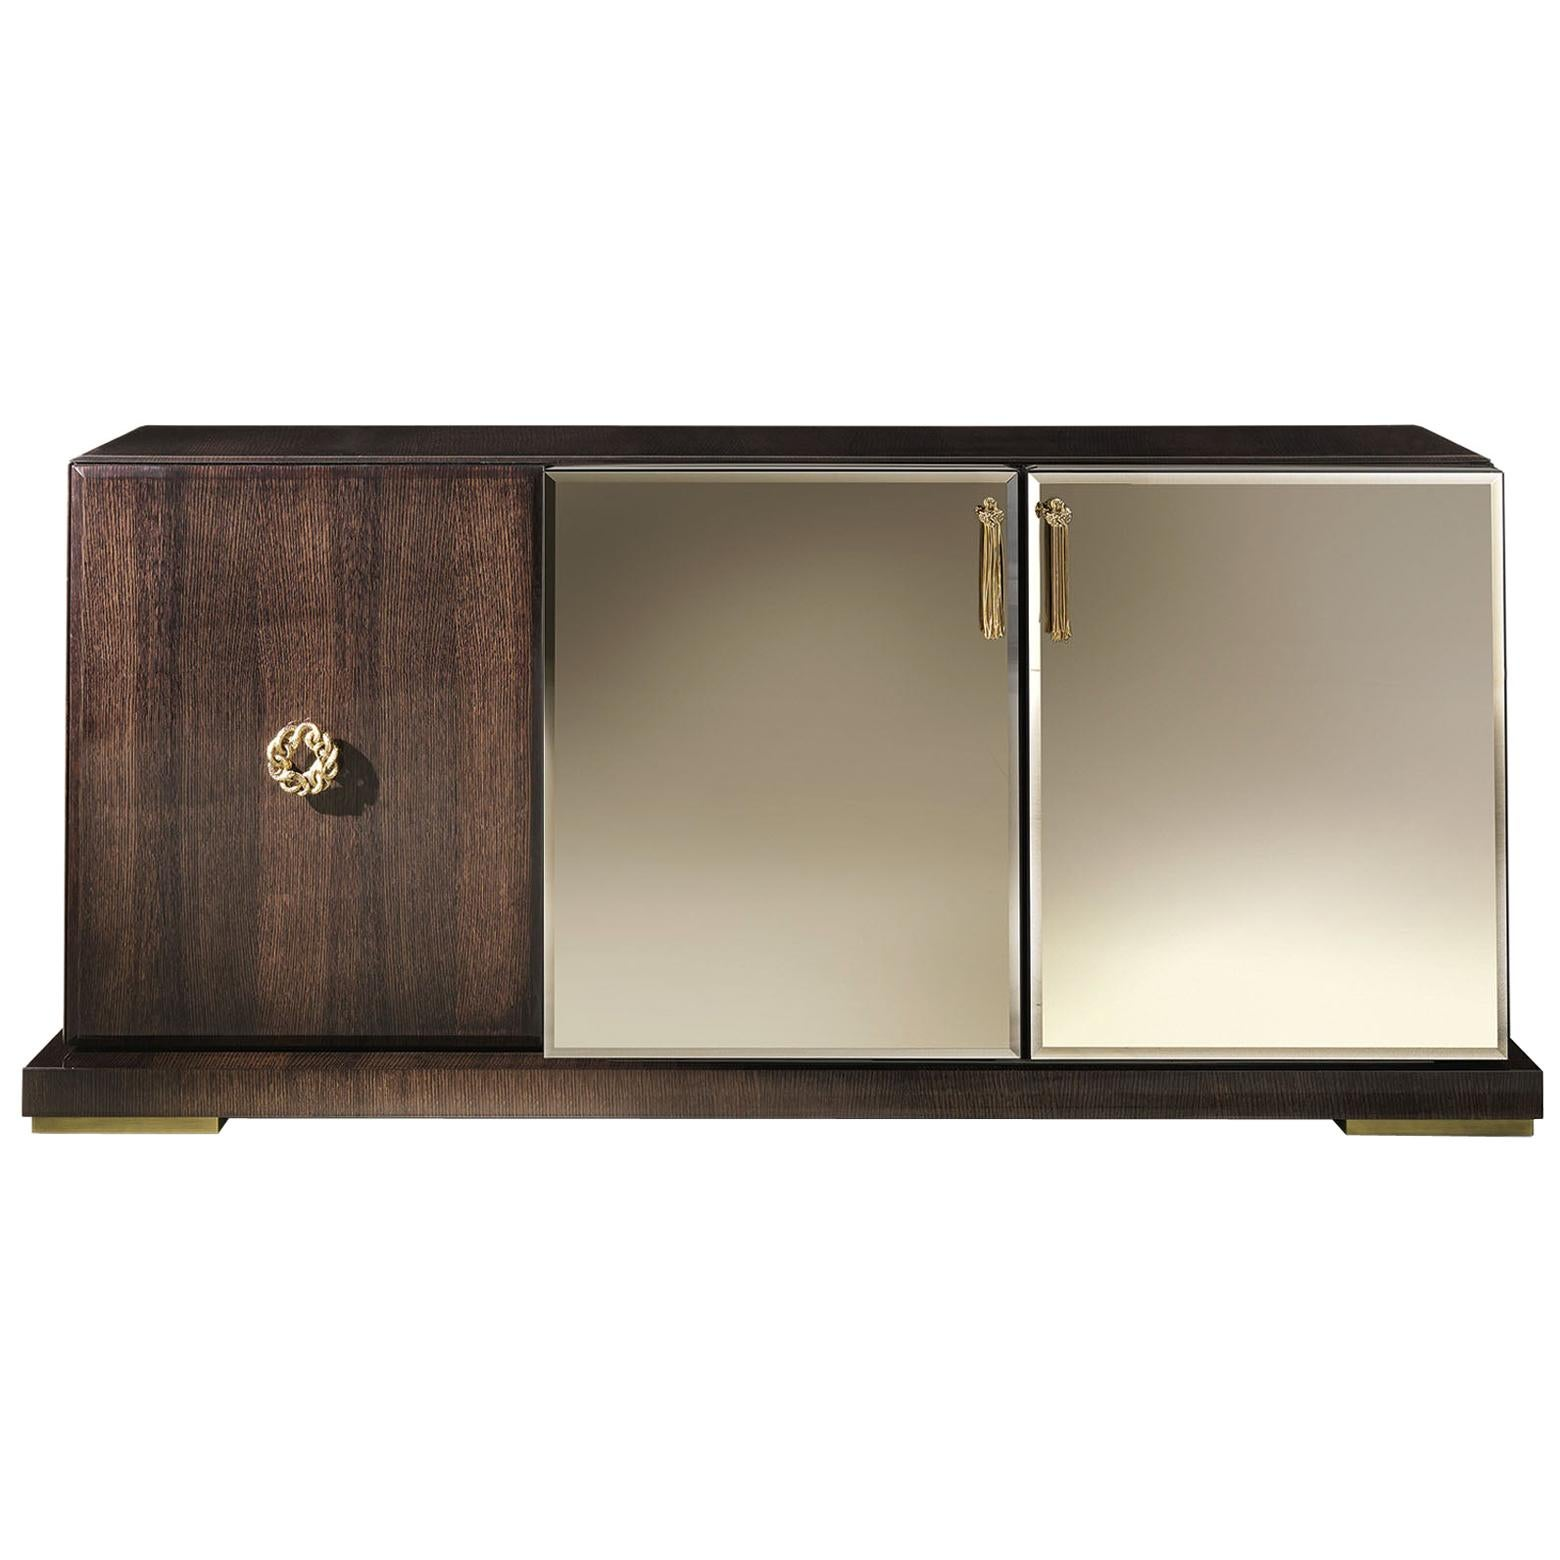 Sahara.3 Sideboard with 3-Doors in Wood by Roberto Cavalli Home Interiors